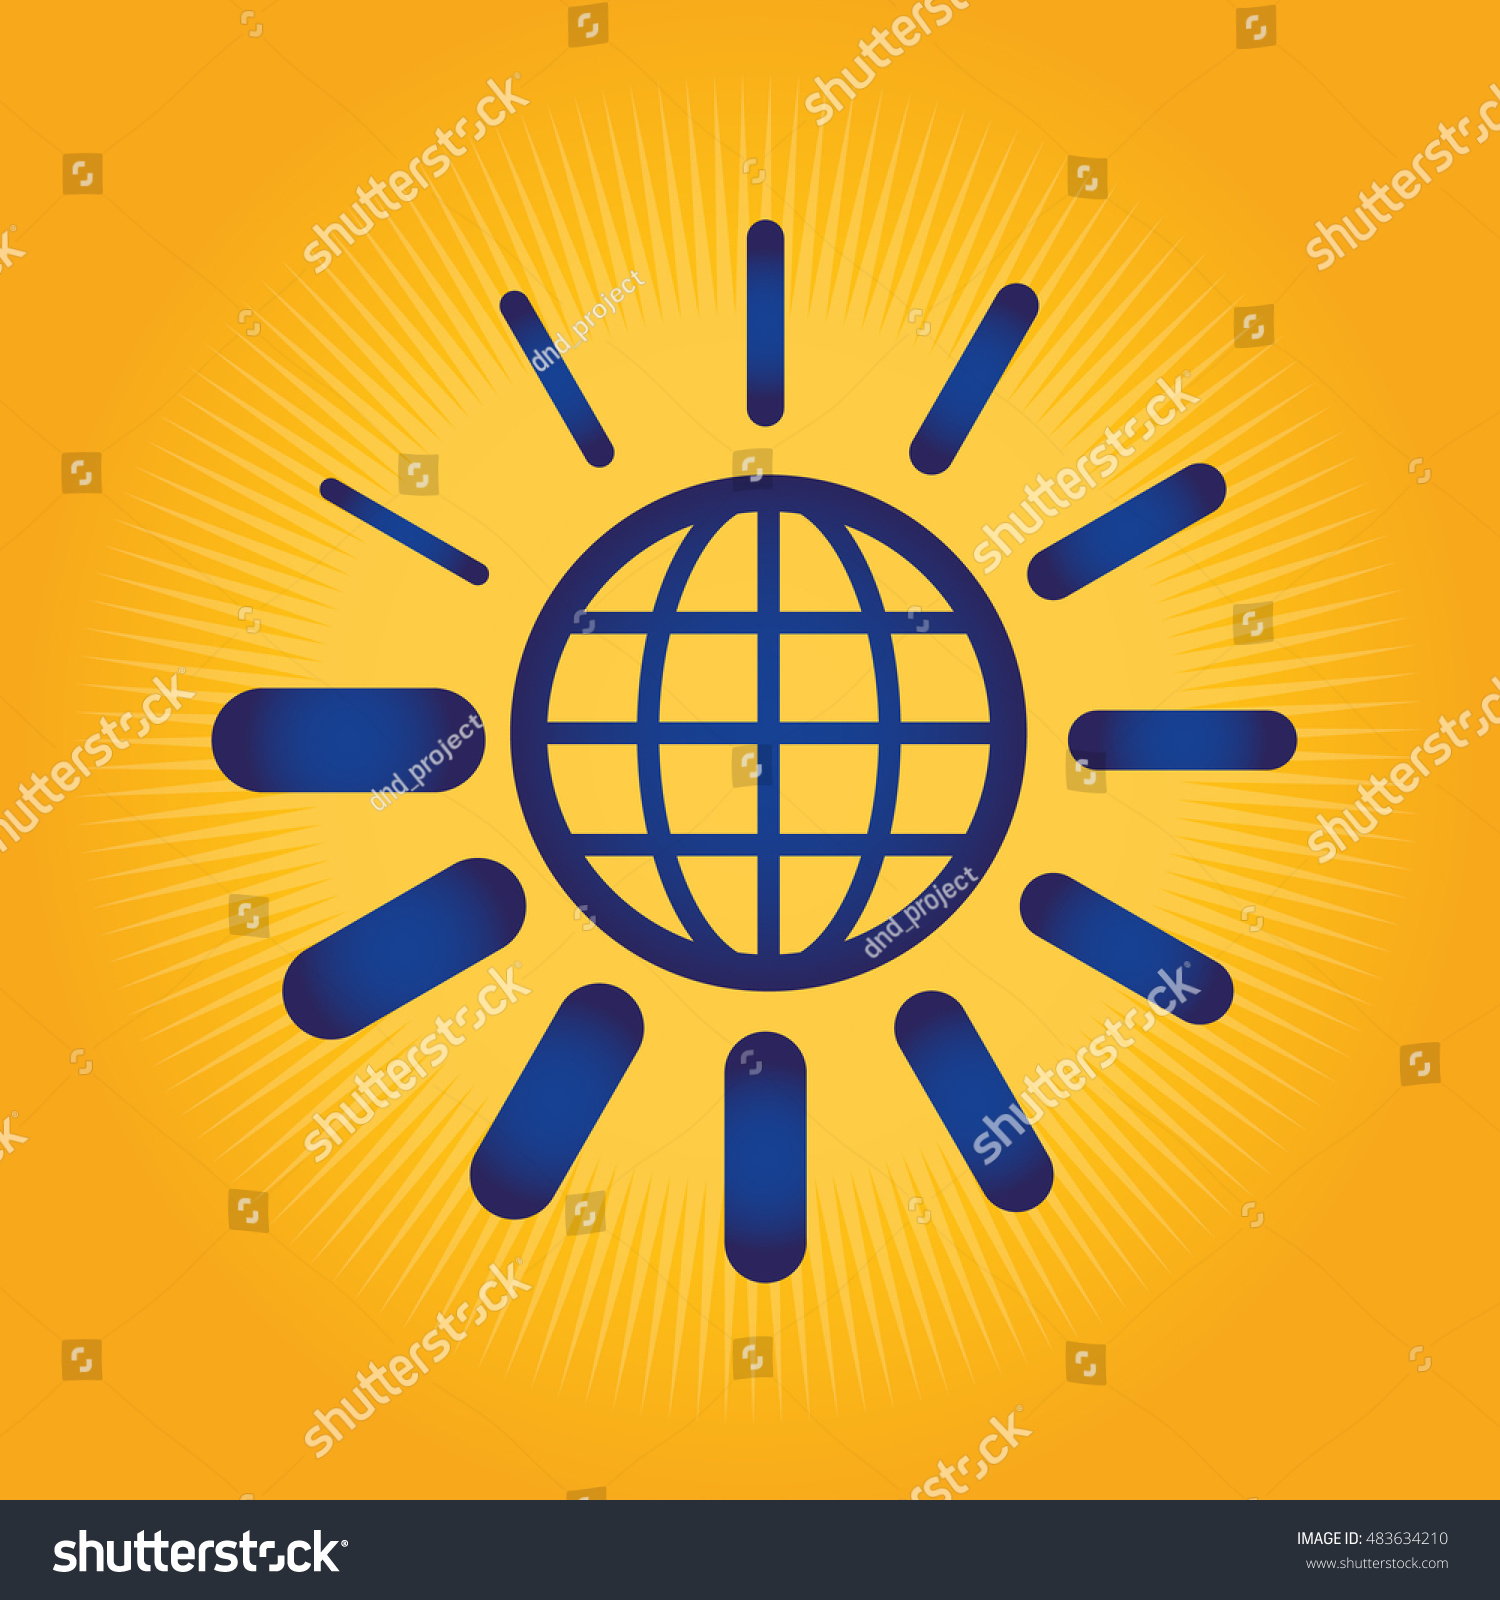 Globe loading symbol stock vector 483634210 shutterstock globe and loading symbol biocorpaavc Image collections